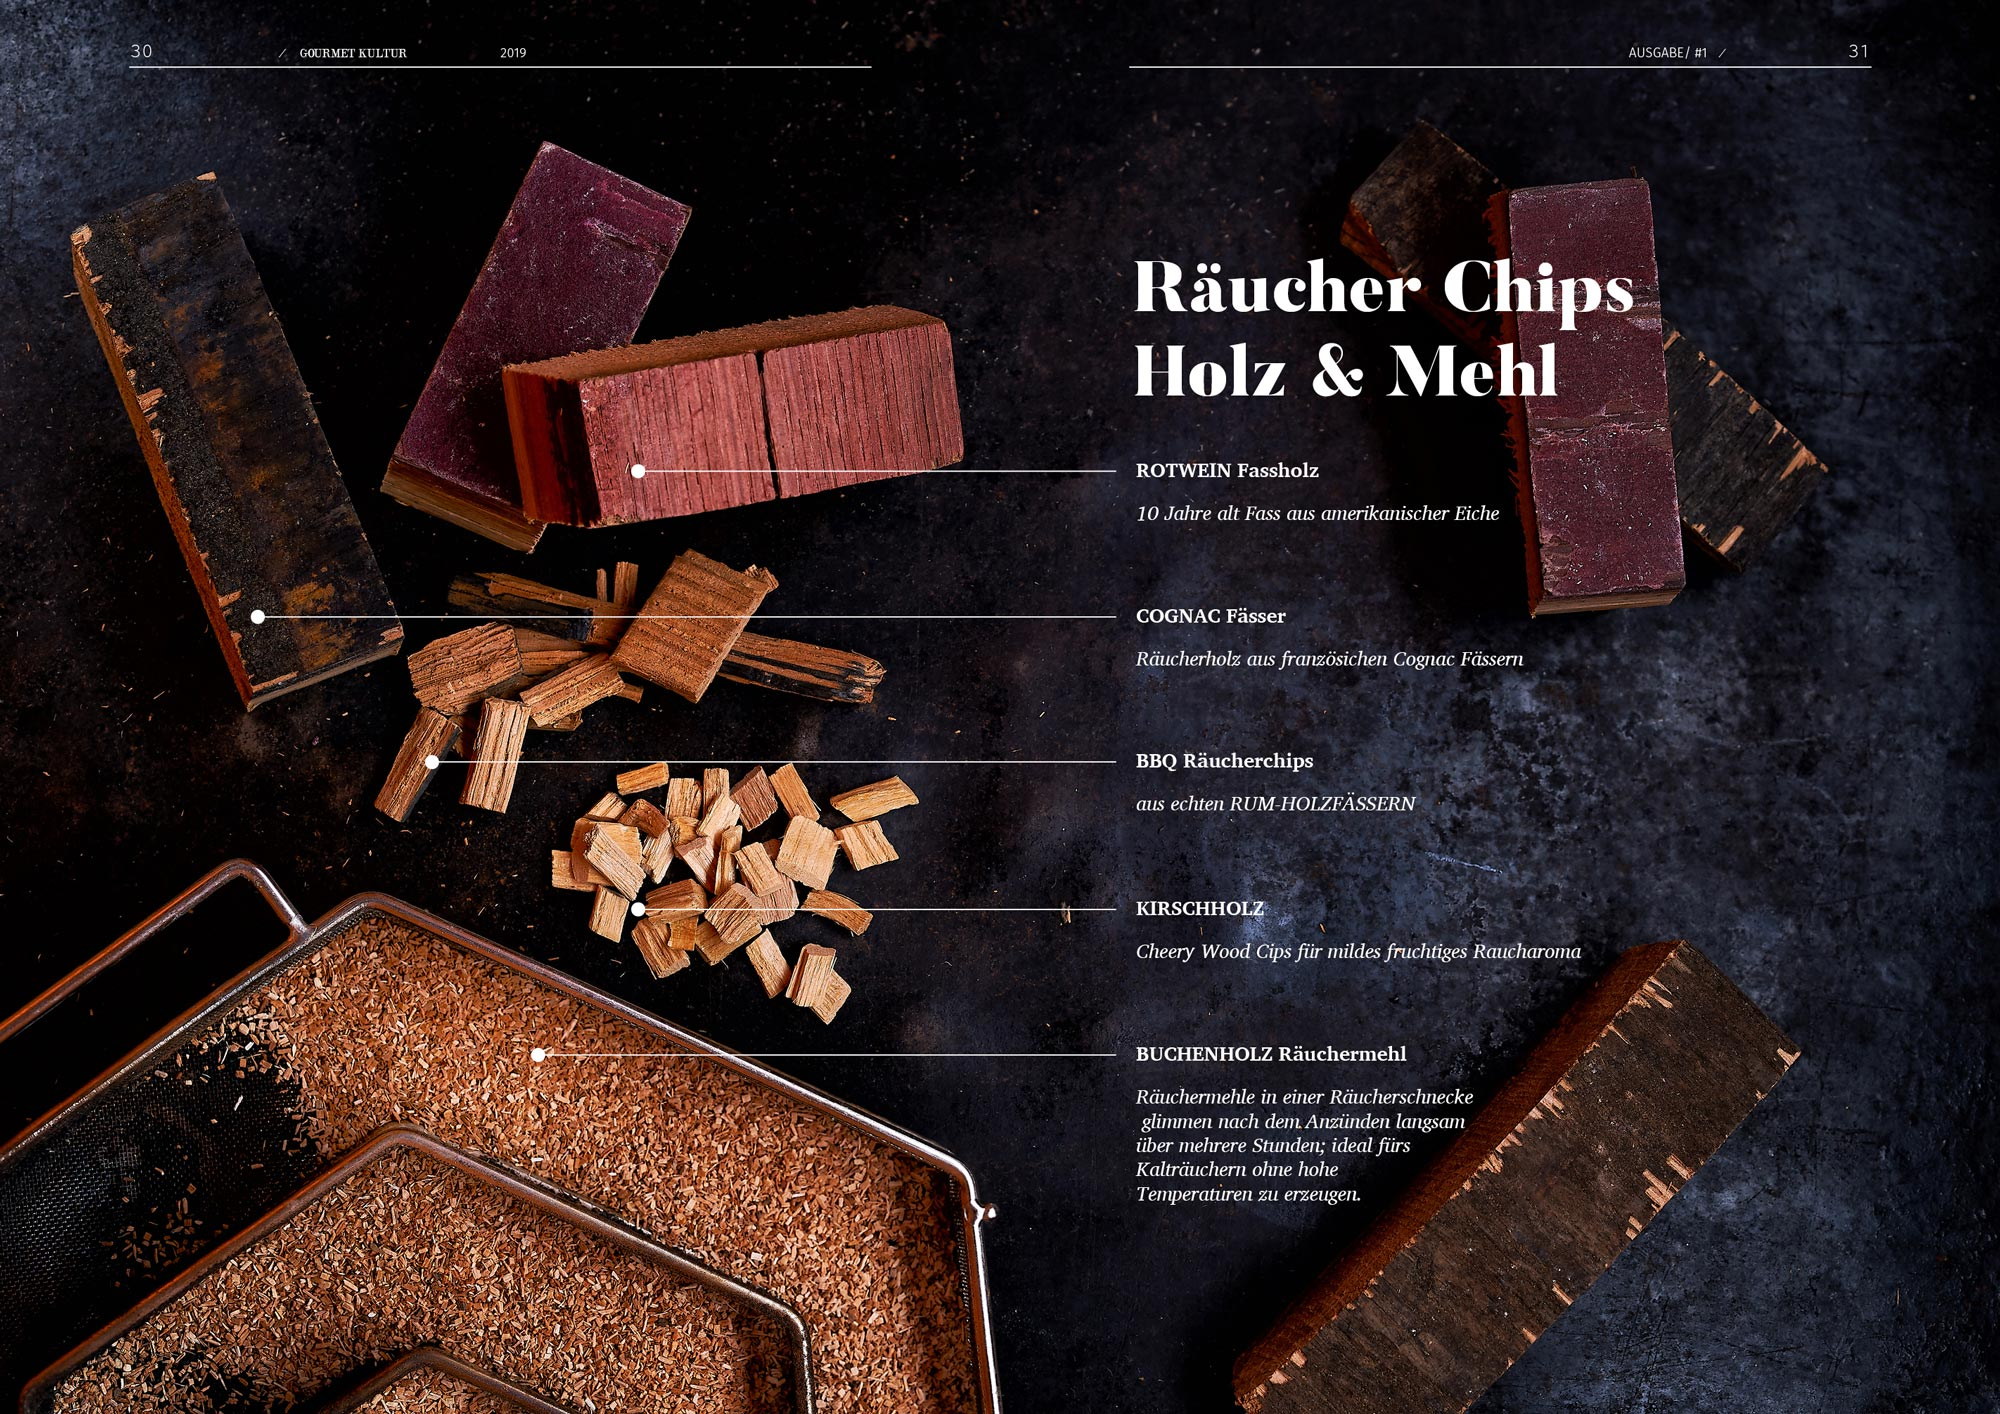 fine-food-blog-magazin-lachs-rauechern Räucher- Chips- Mehl